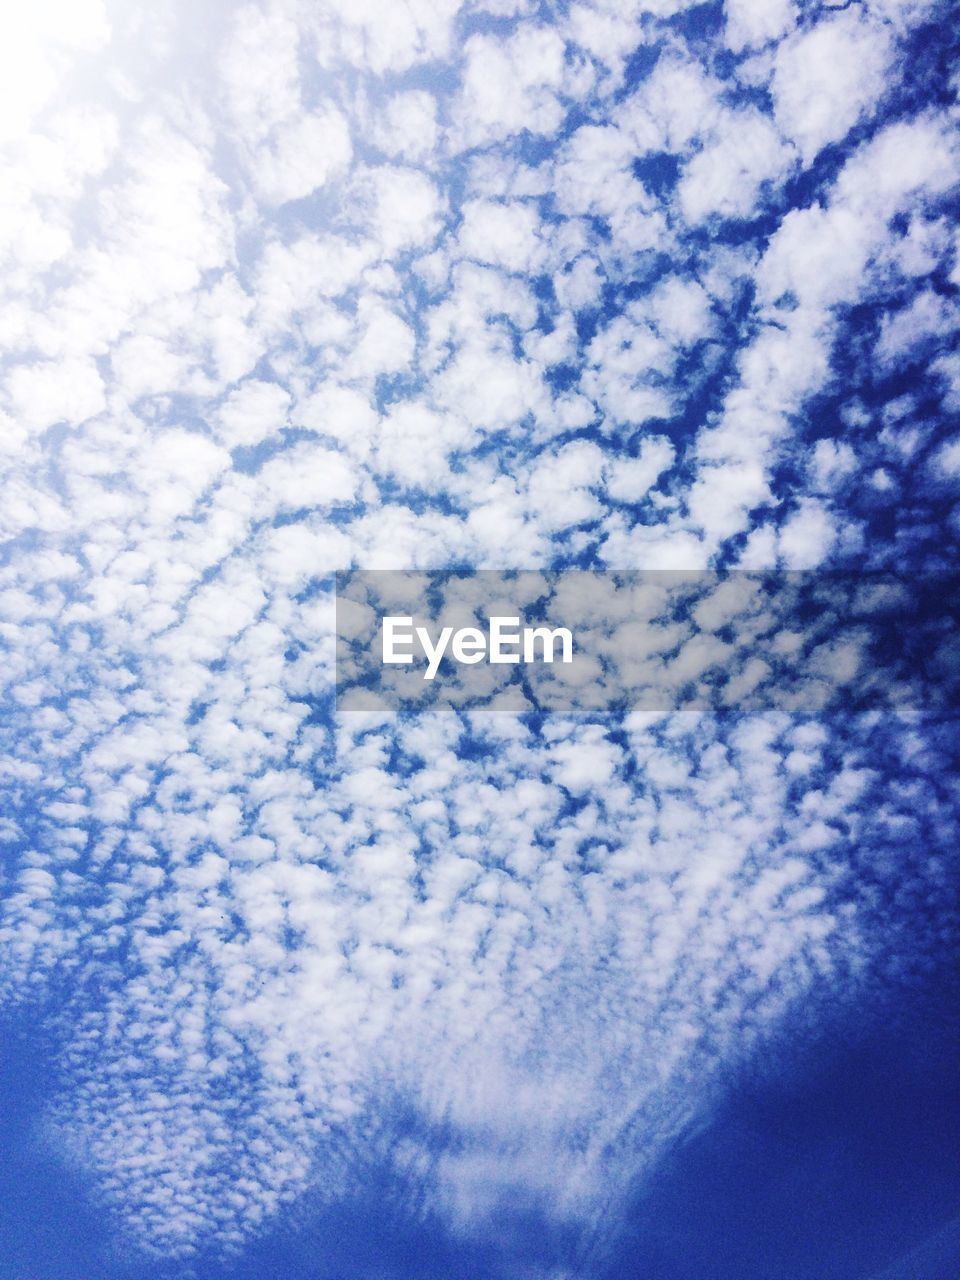 sky, cloud - sky, beauty in nature, blue, nature, low angle view, backgrounds, no people, scenics, sky only, cloudscape, tranquility, tranquil scene, abstract, day, full frame, outdoors, close-up, vapor trail